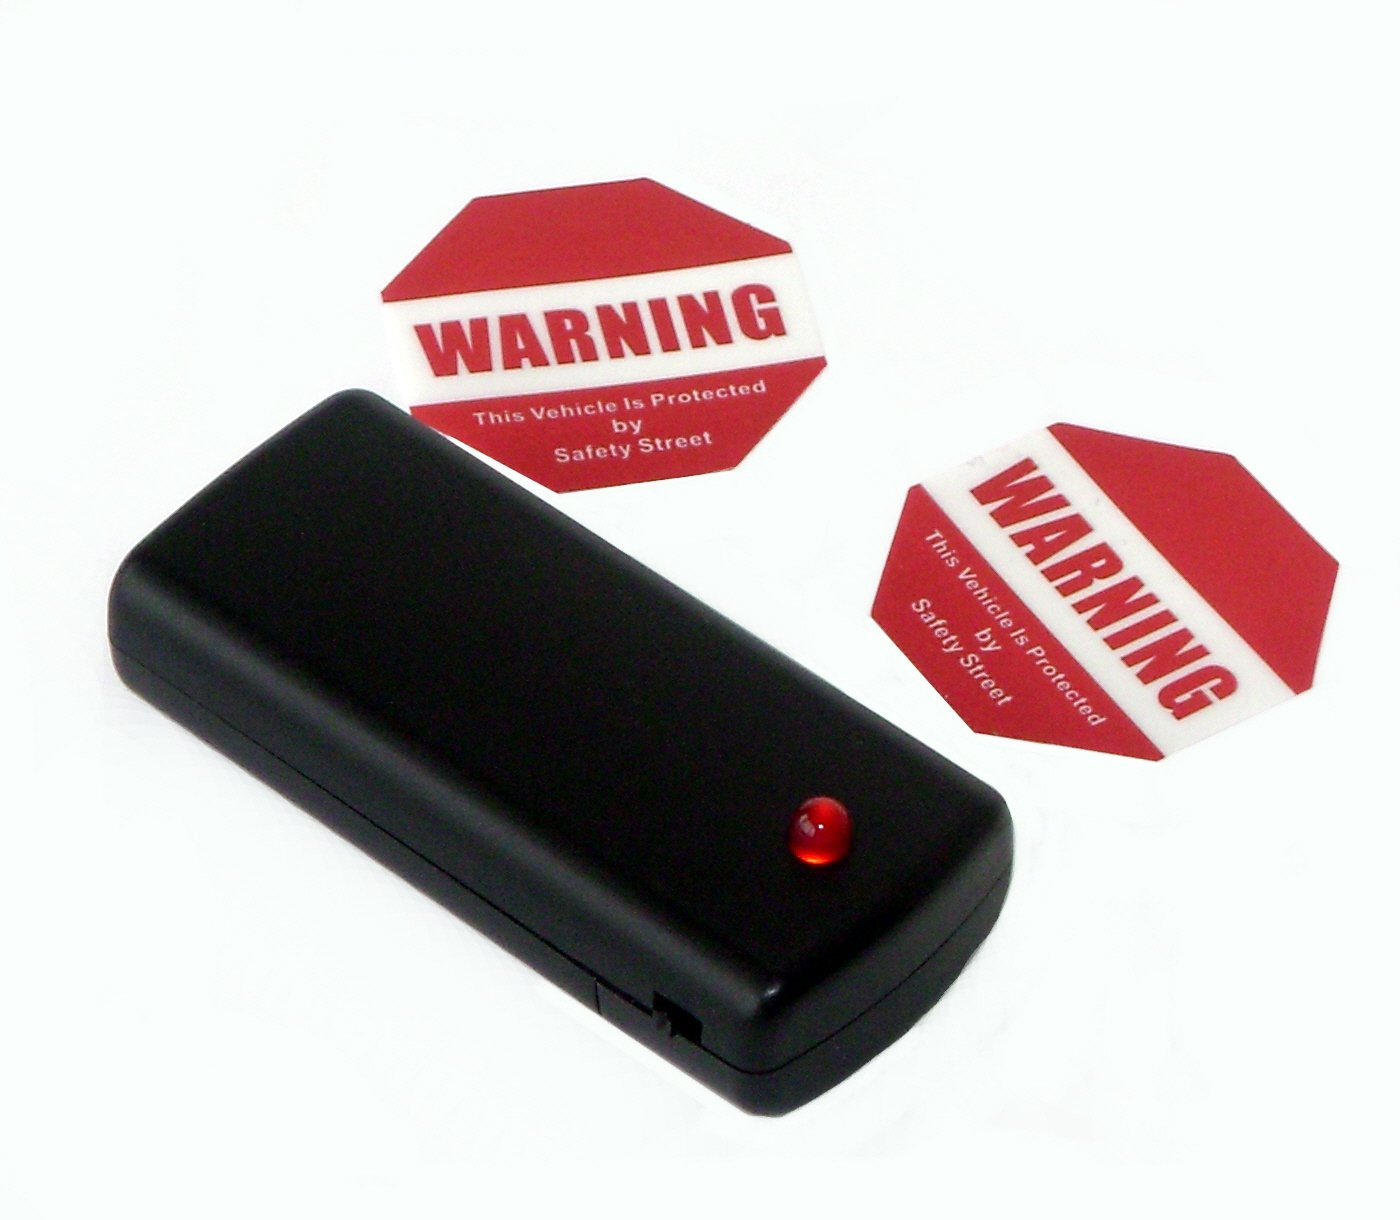 The Club SA110 Vehicle Anti-Theft Alert Signal and Decal Combo Set